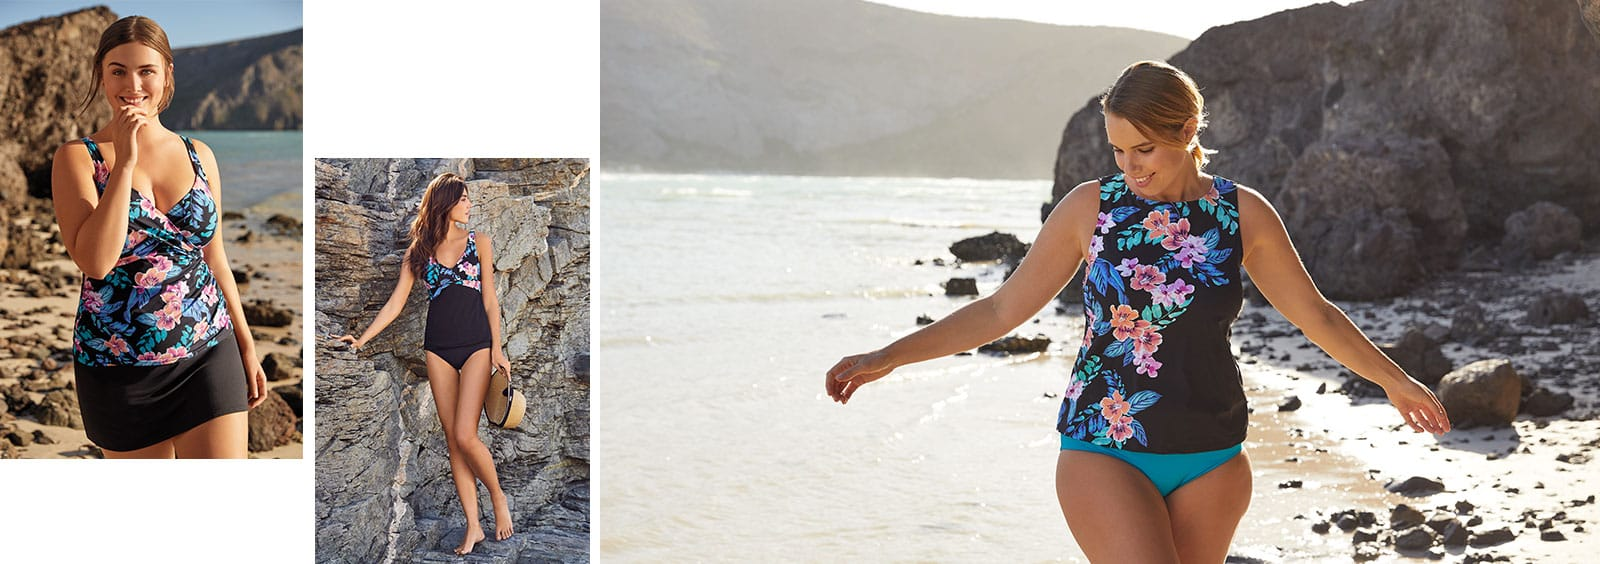 5 Best Swimsuits for Larger Busts   Lands' End